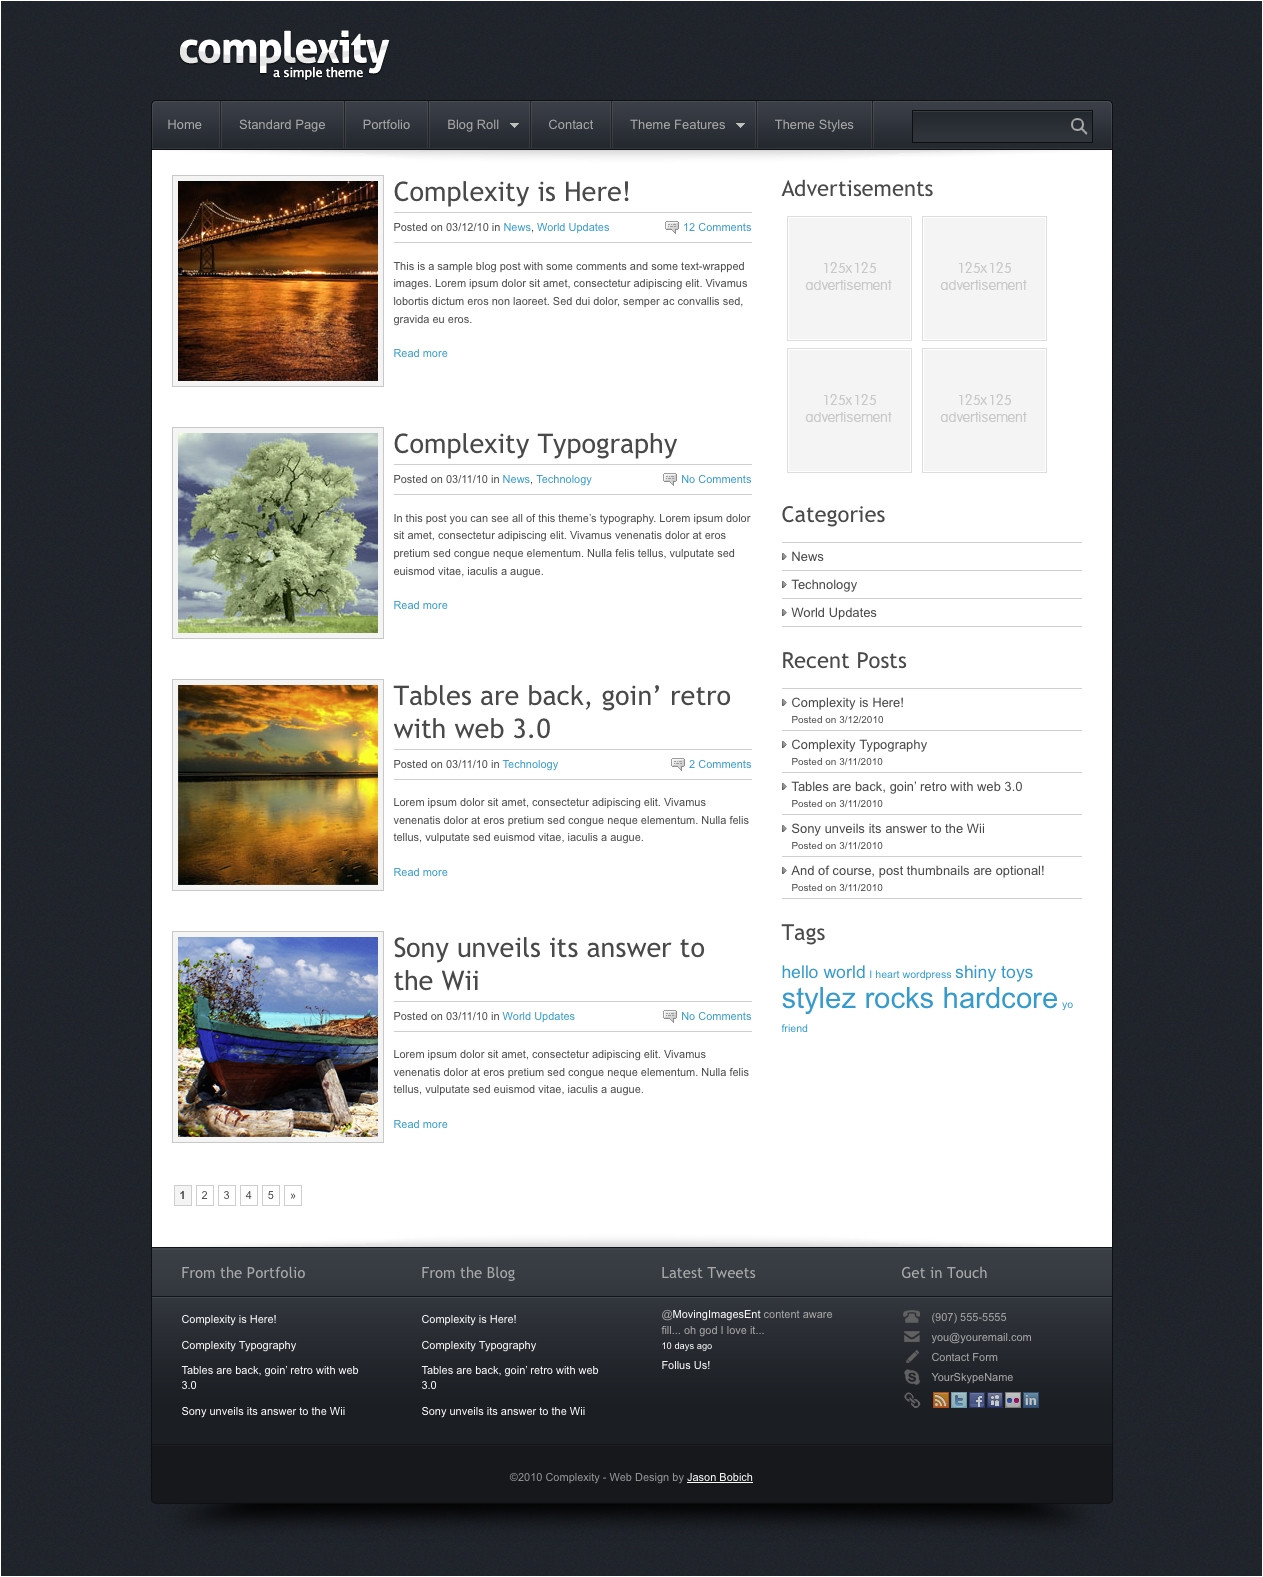 WordPress Create Blog Page Template WordPress Blog Page Template Beepmunk